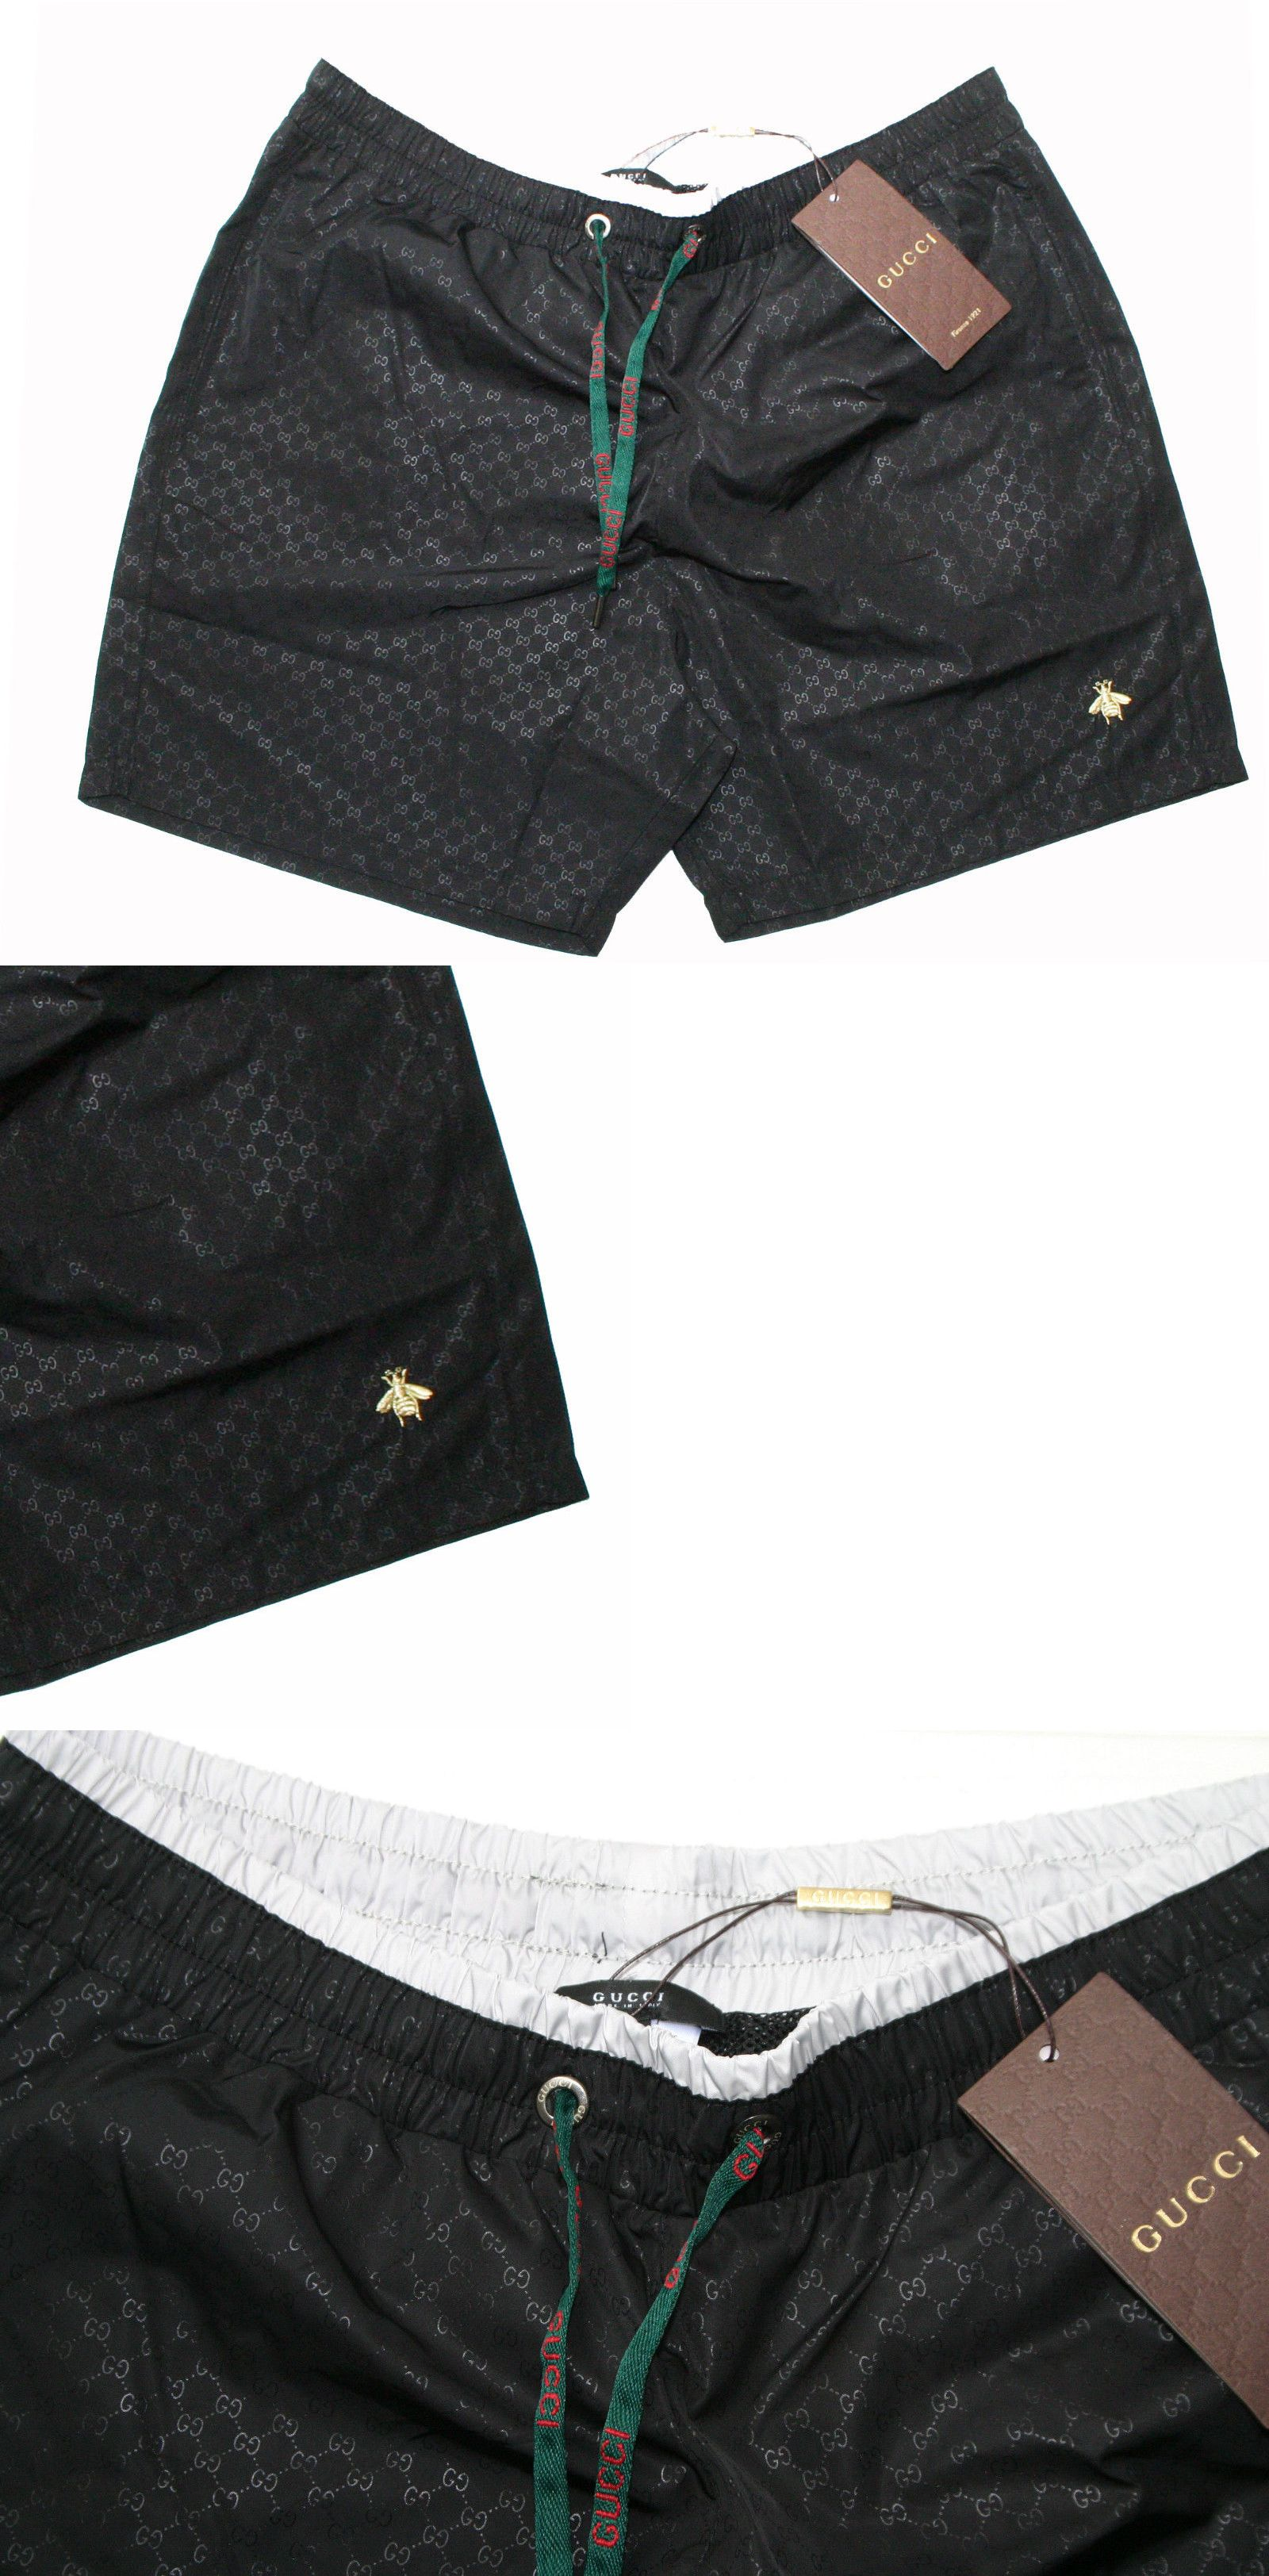 964e4bdcea Swimwear 15690: New Gucci Swim Wear Black Color Bee-Embroidered Men Short  -> BUY IT NOW ONLY: $69.99 on eBay!